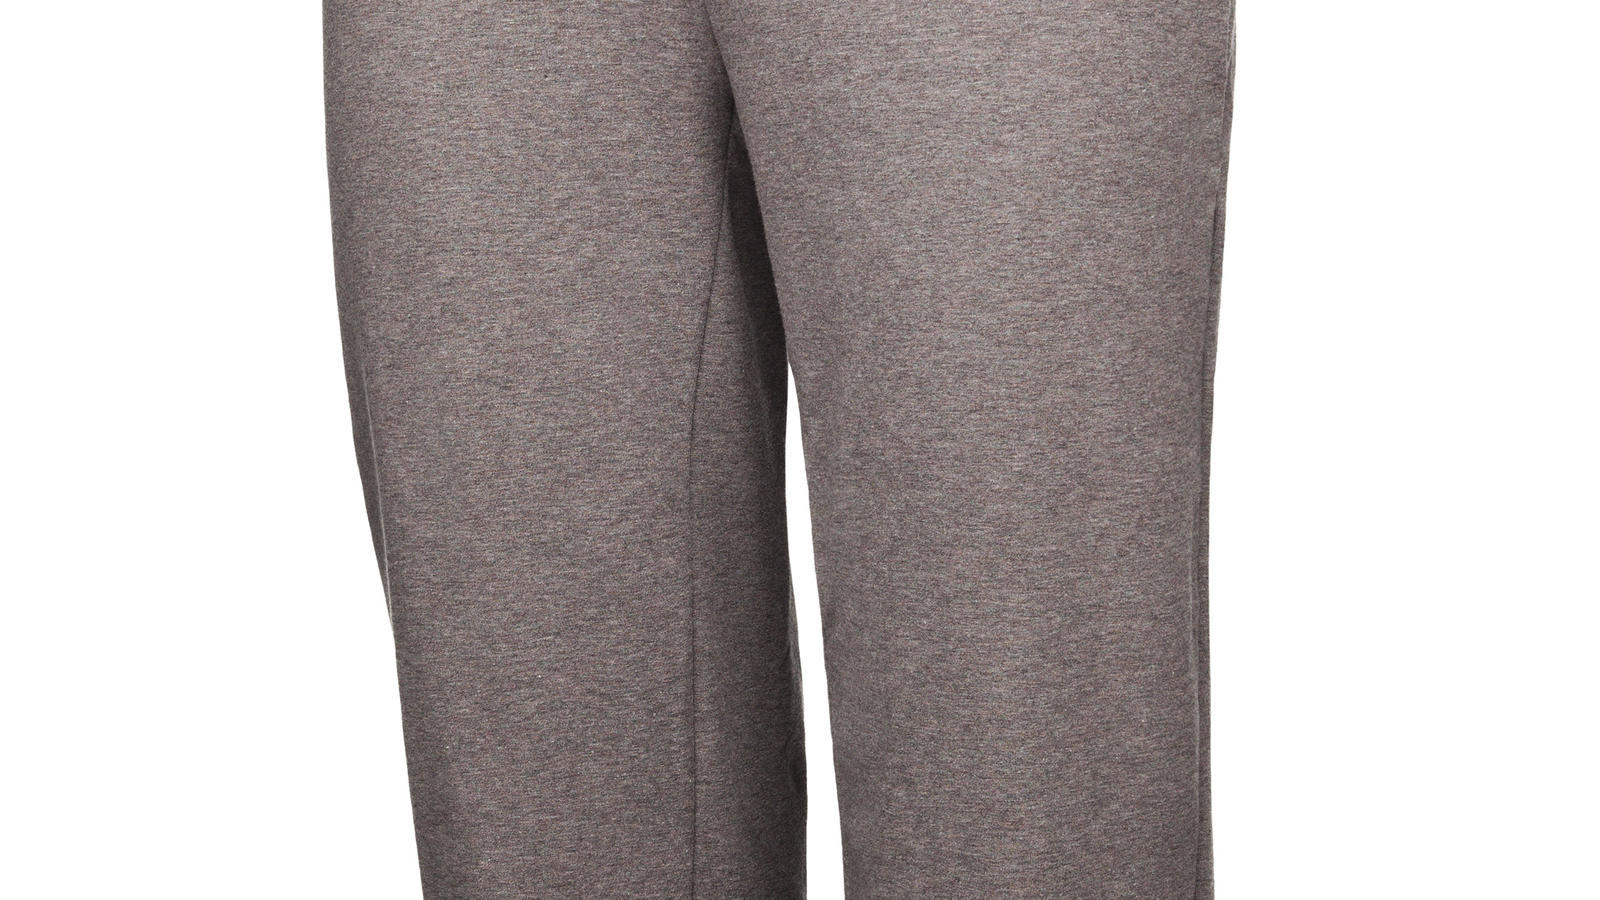 SP12_Nike_Obsessed_Capri_Grey_Orange_Swoosh